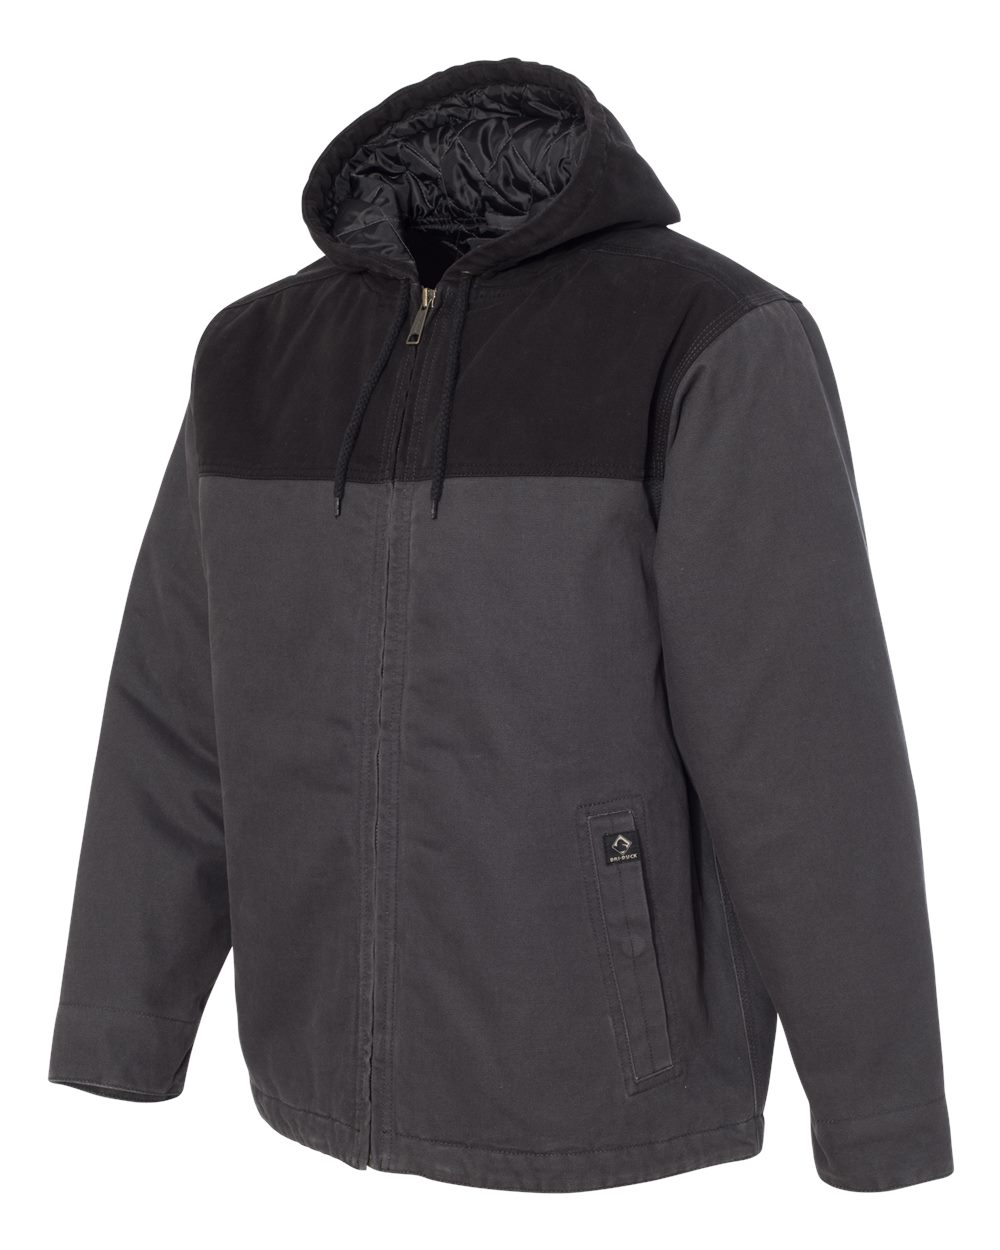 DRI DUCK 5058 - Terrain Hooded Boulder Cloth Jacket